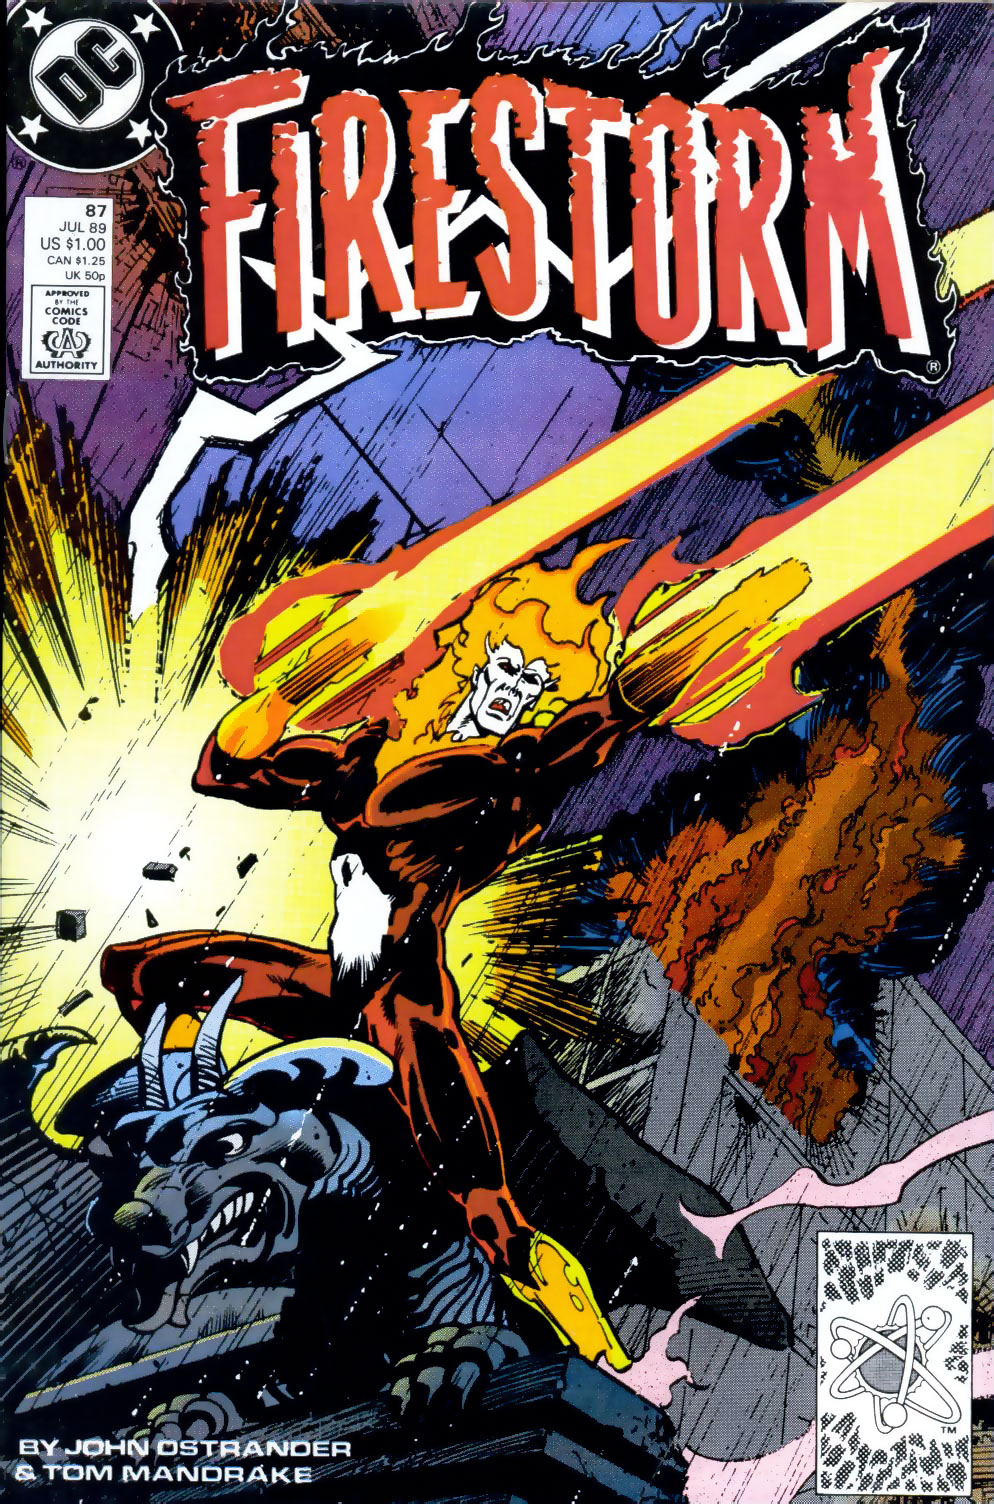 Firestorm #87 by John Ostrander and Tom Mandrake